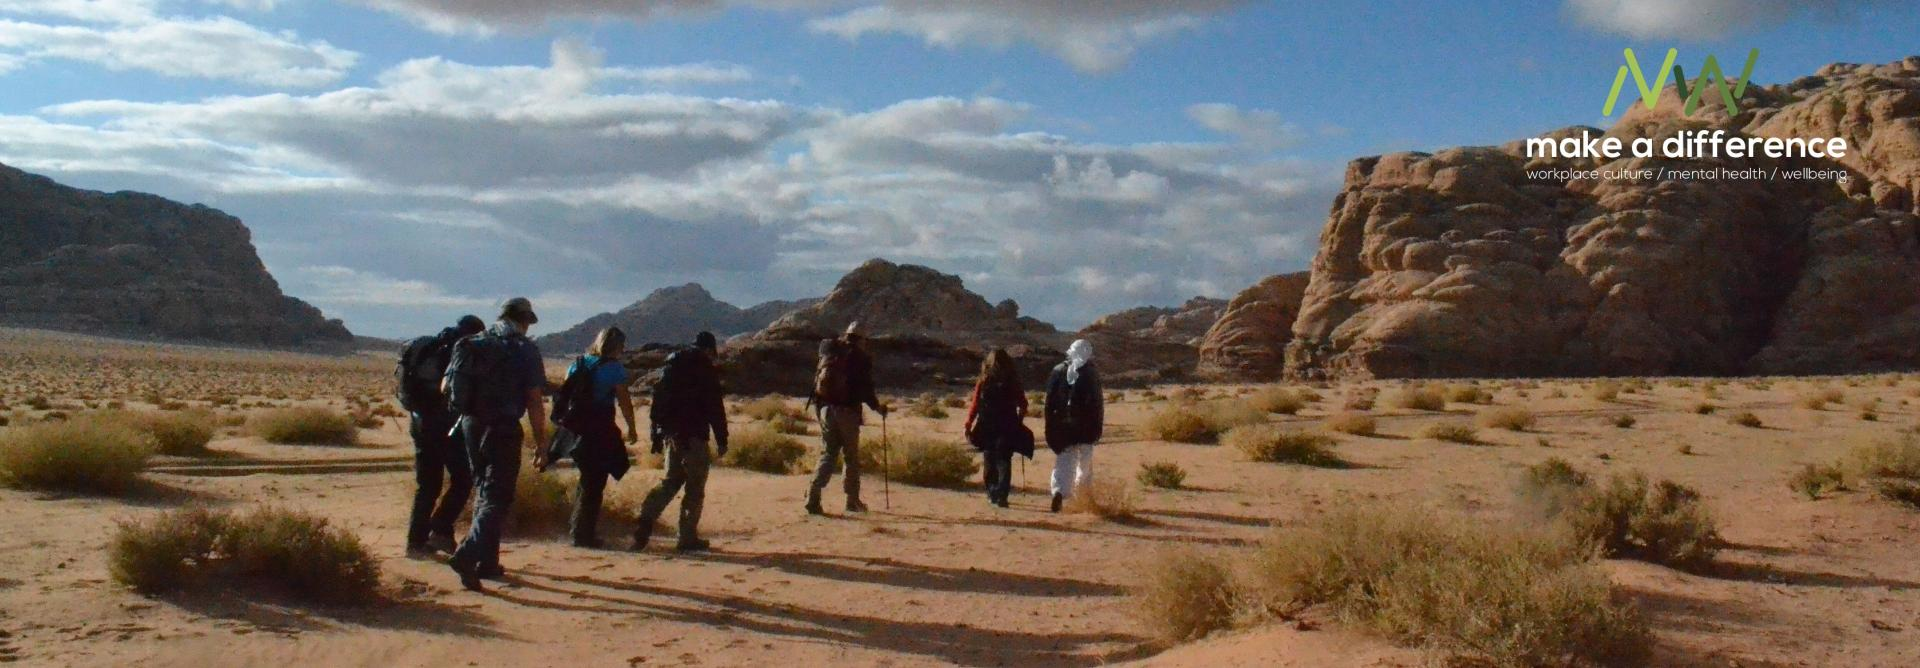 MAD World Trek to Petra